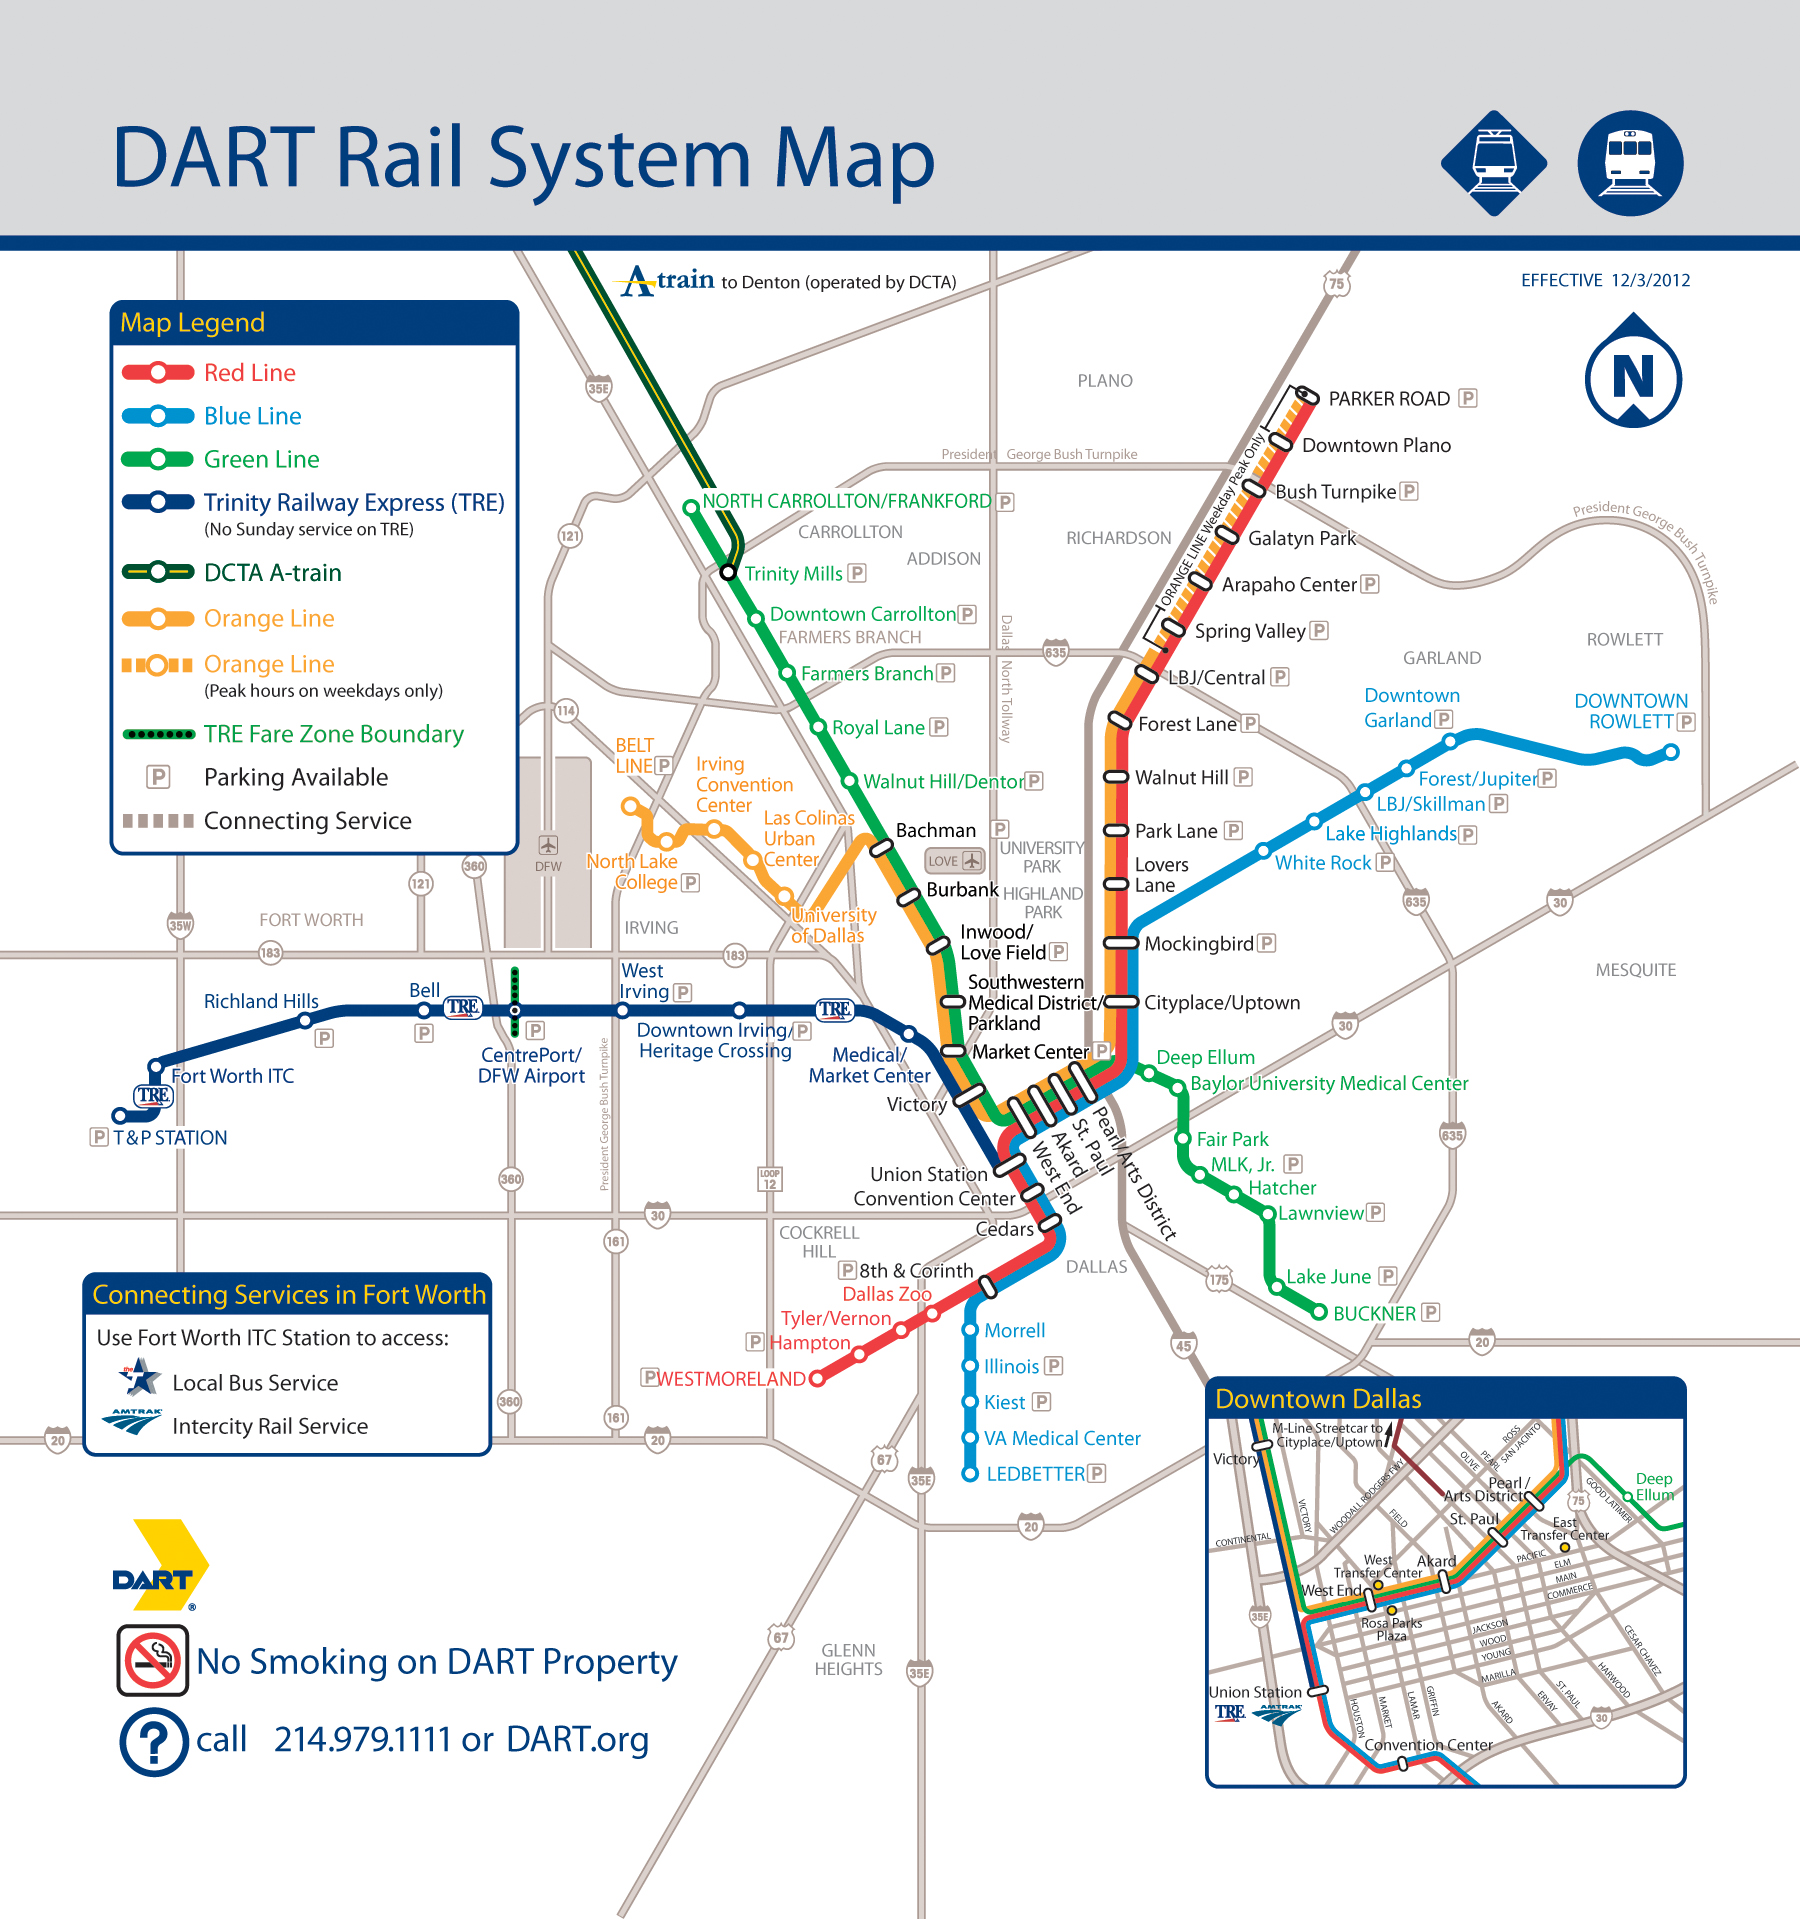 dartorg  dart news release - dart rail system map high resolution jpg